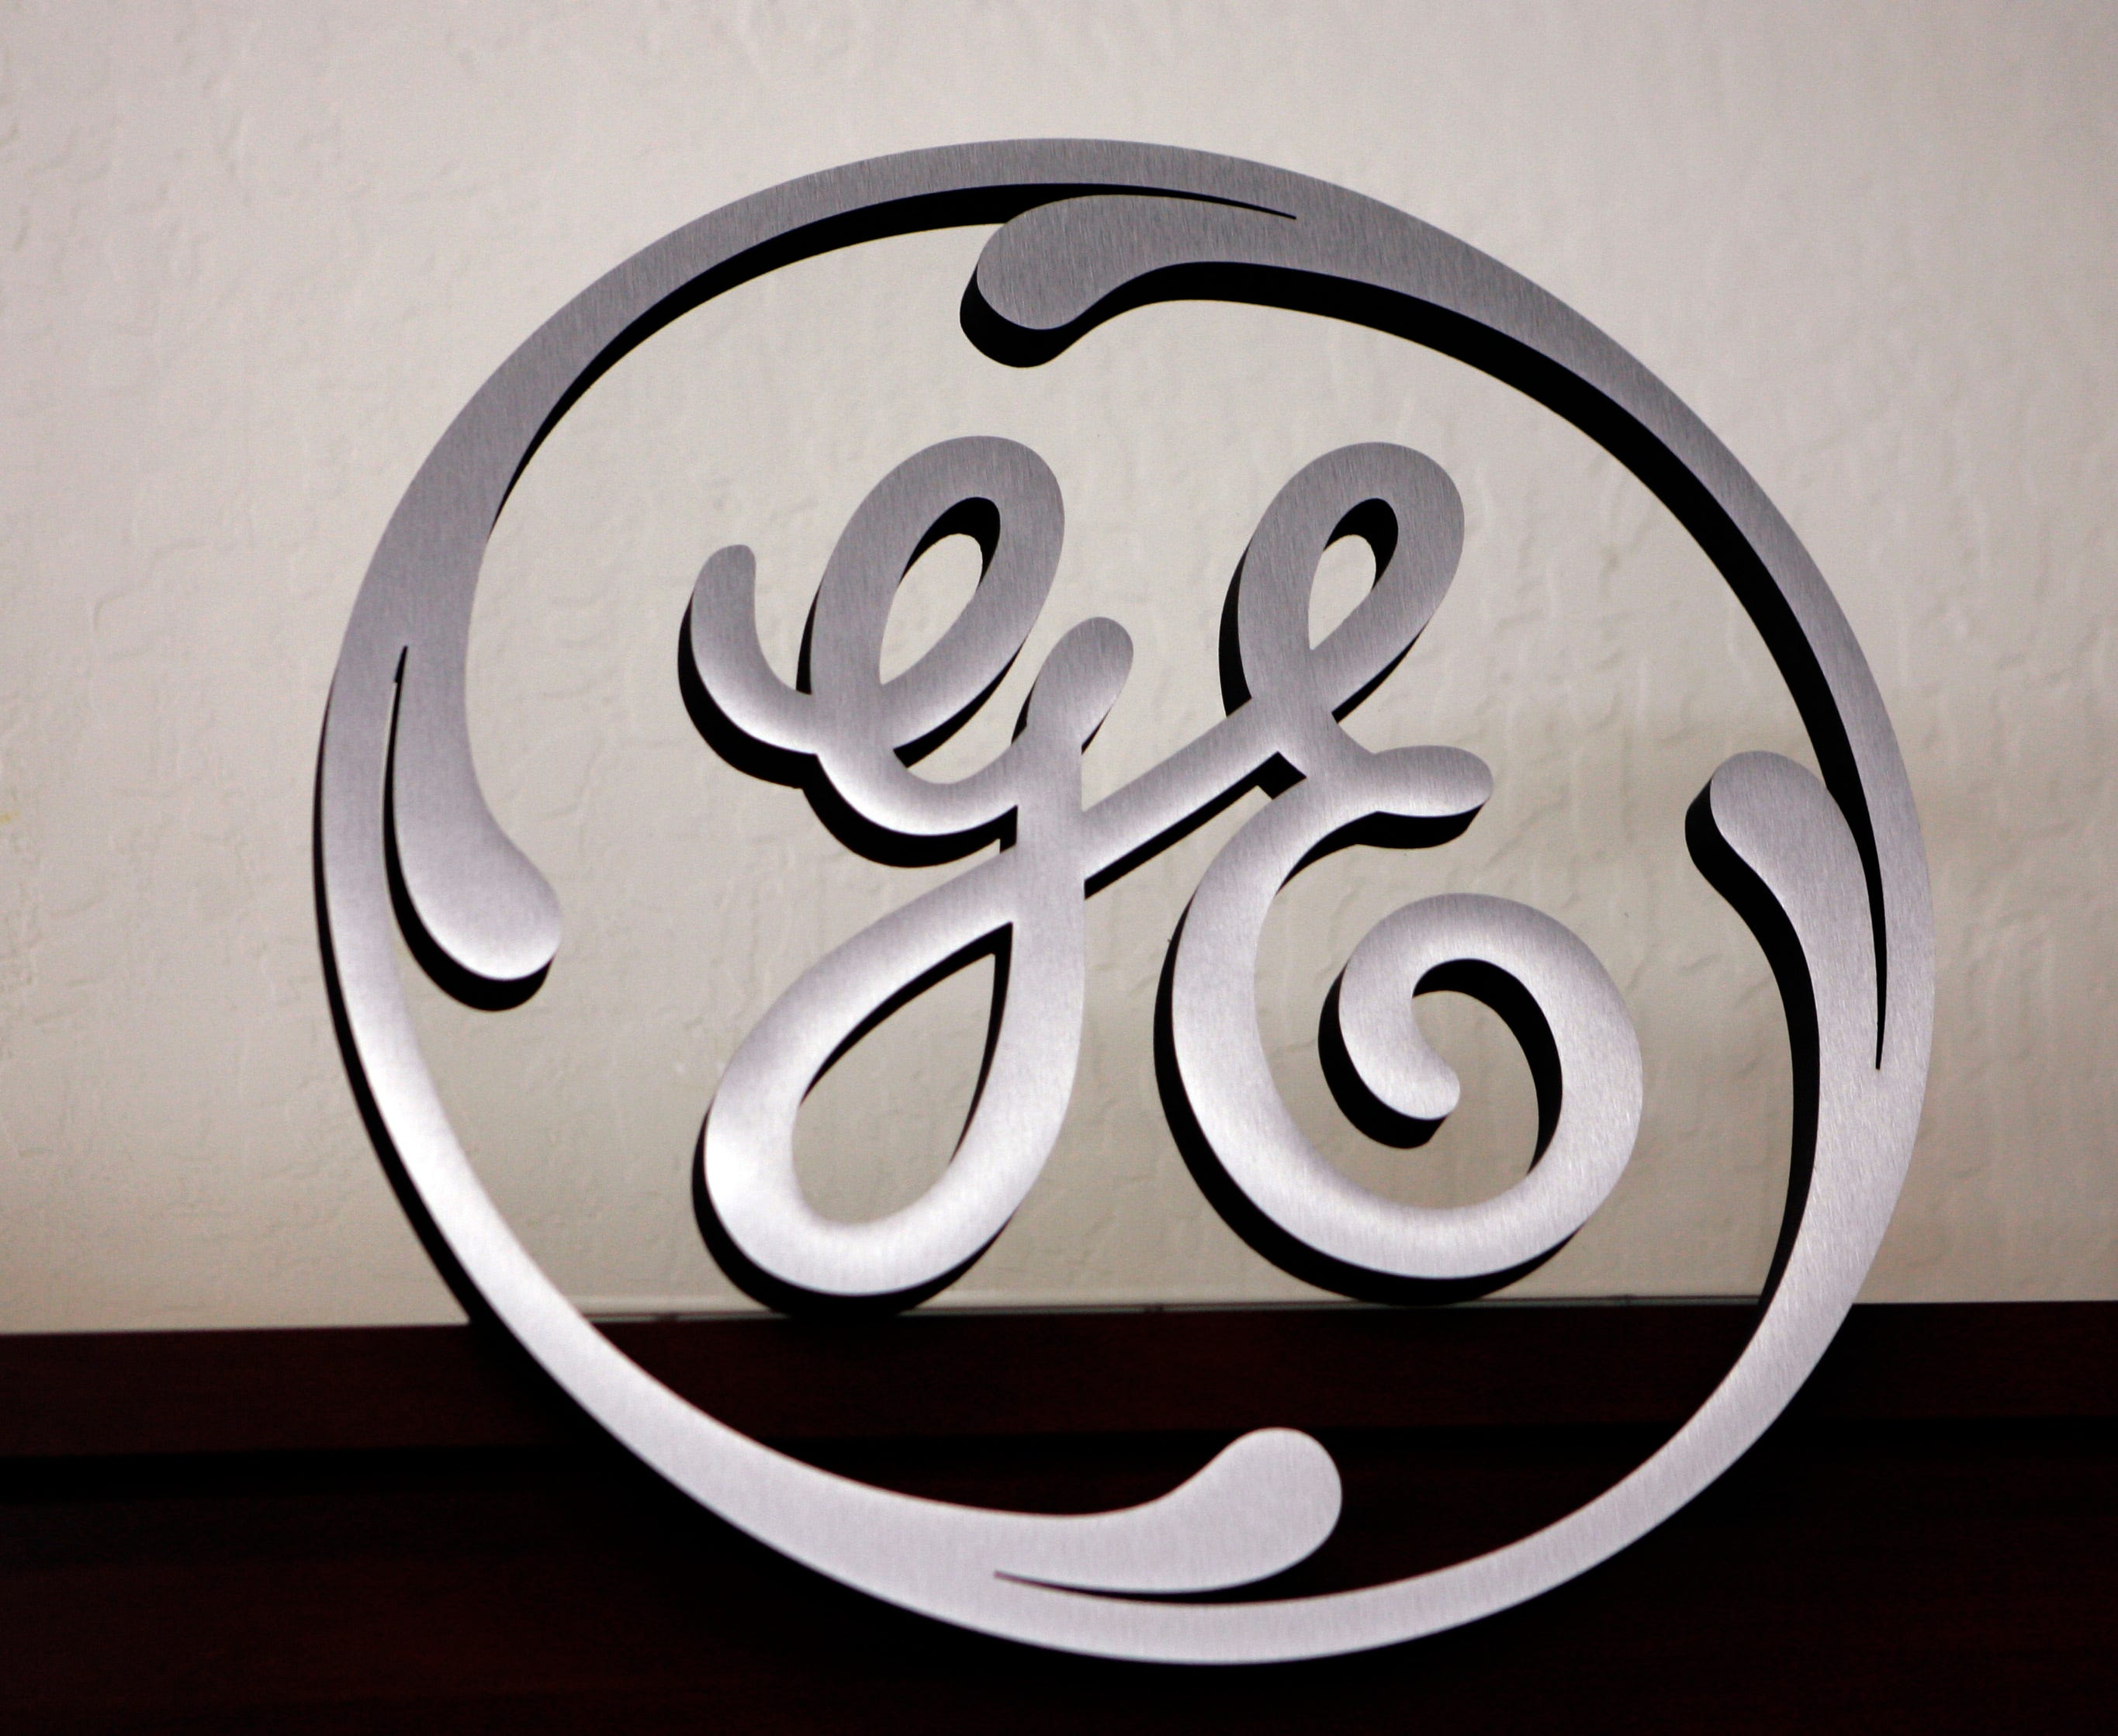 GE may move up to 500 jobs overseas